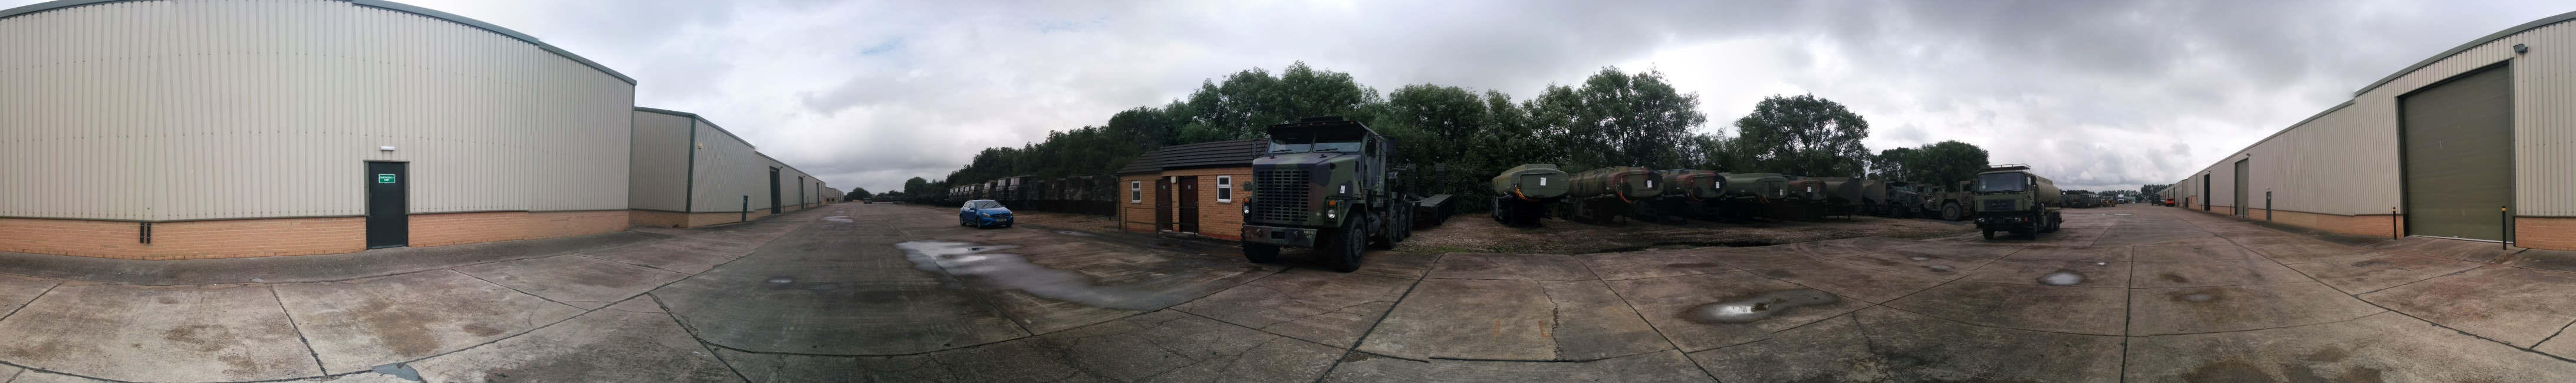 Used ex army british NATO trucks for sale